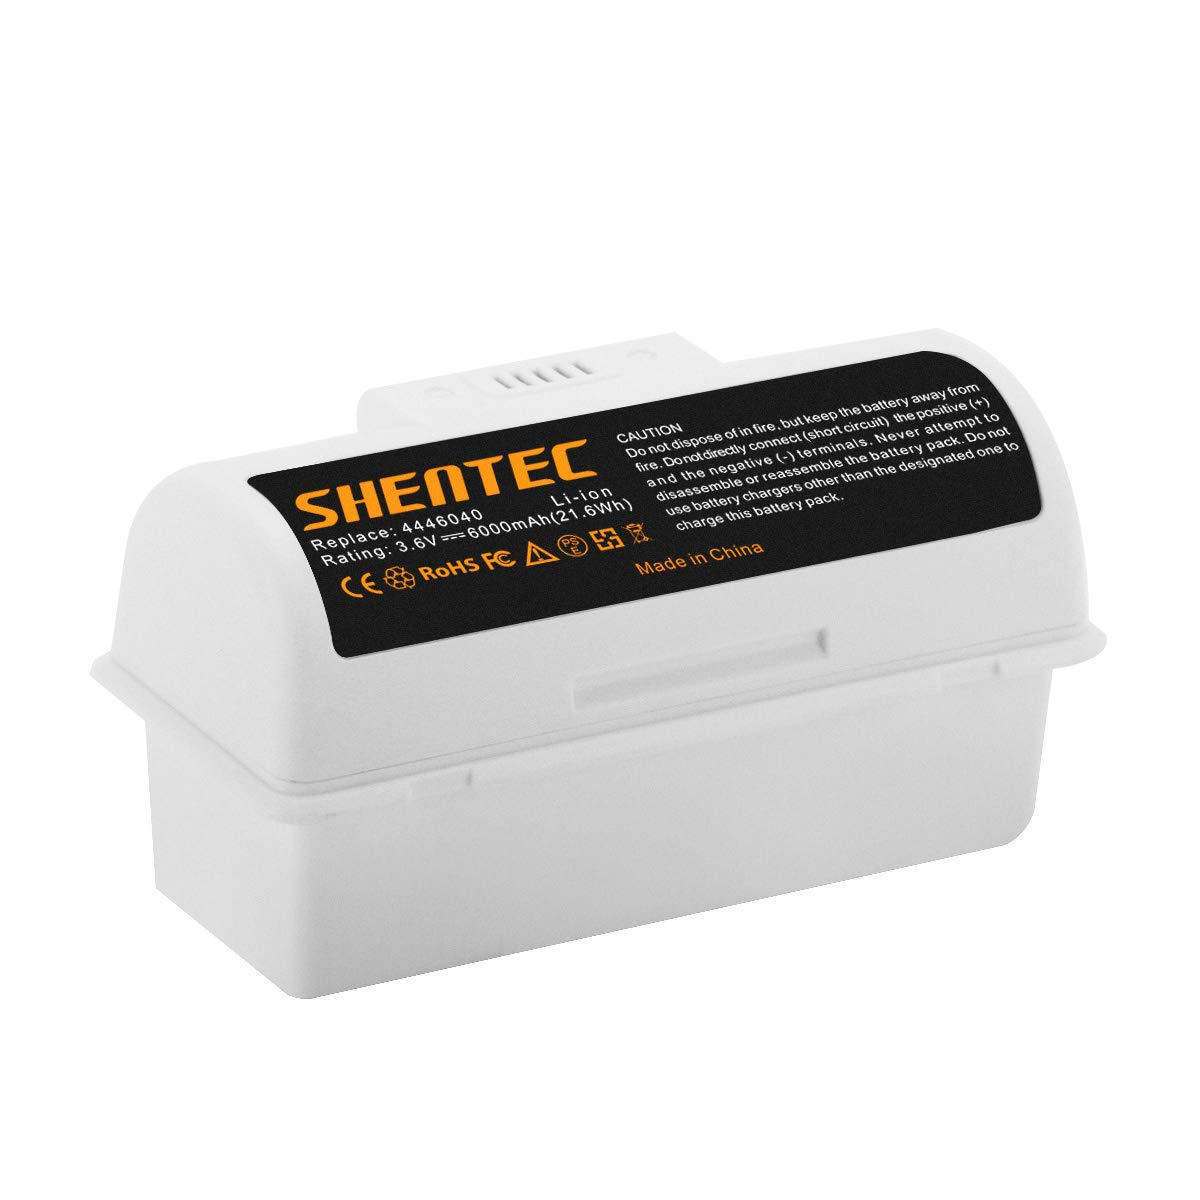 Shentec 3.6V 6.0Ah Replacement Battery Compatible with iRobot Braava Jet 240 Floor Mopping Robots, Li-ion Battery